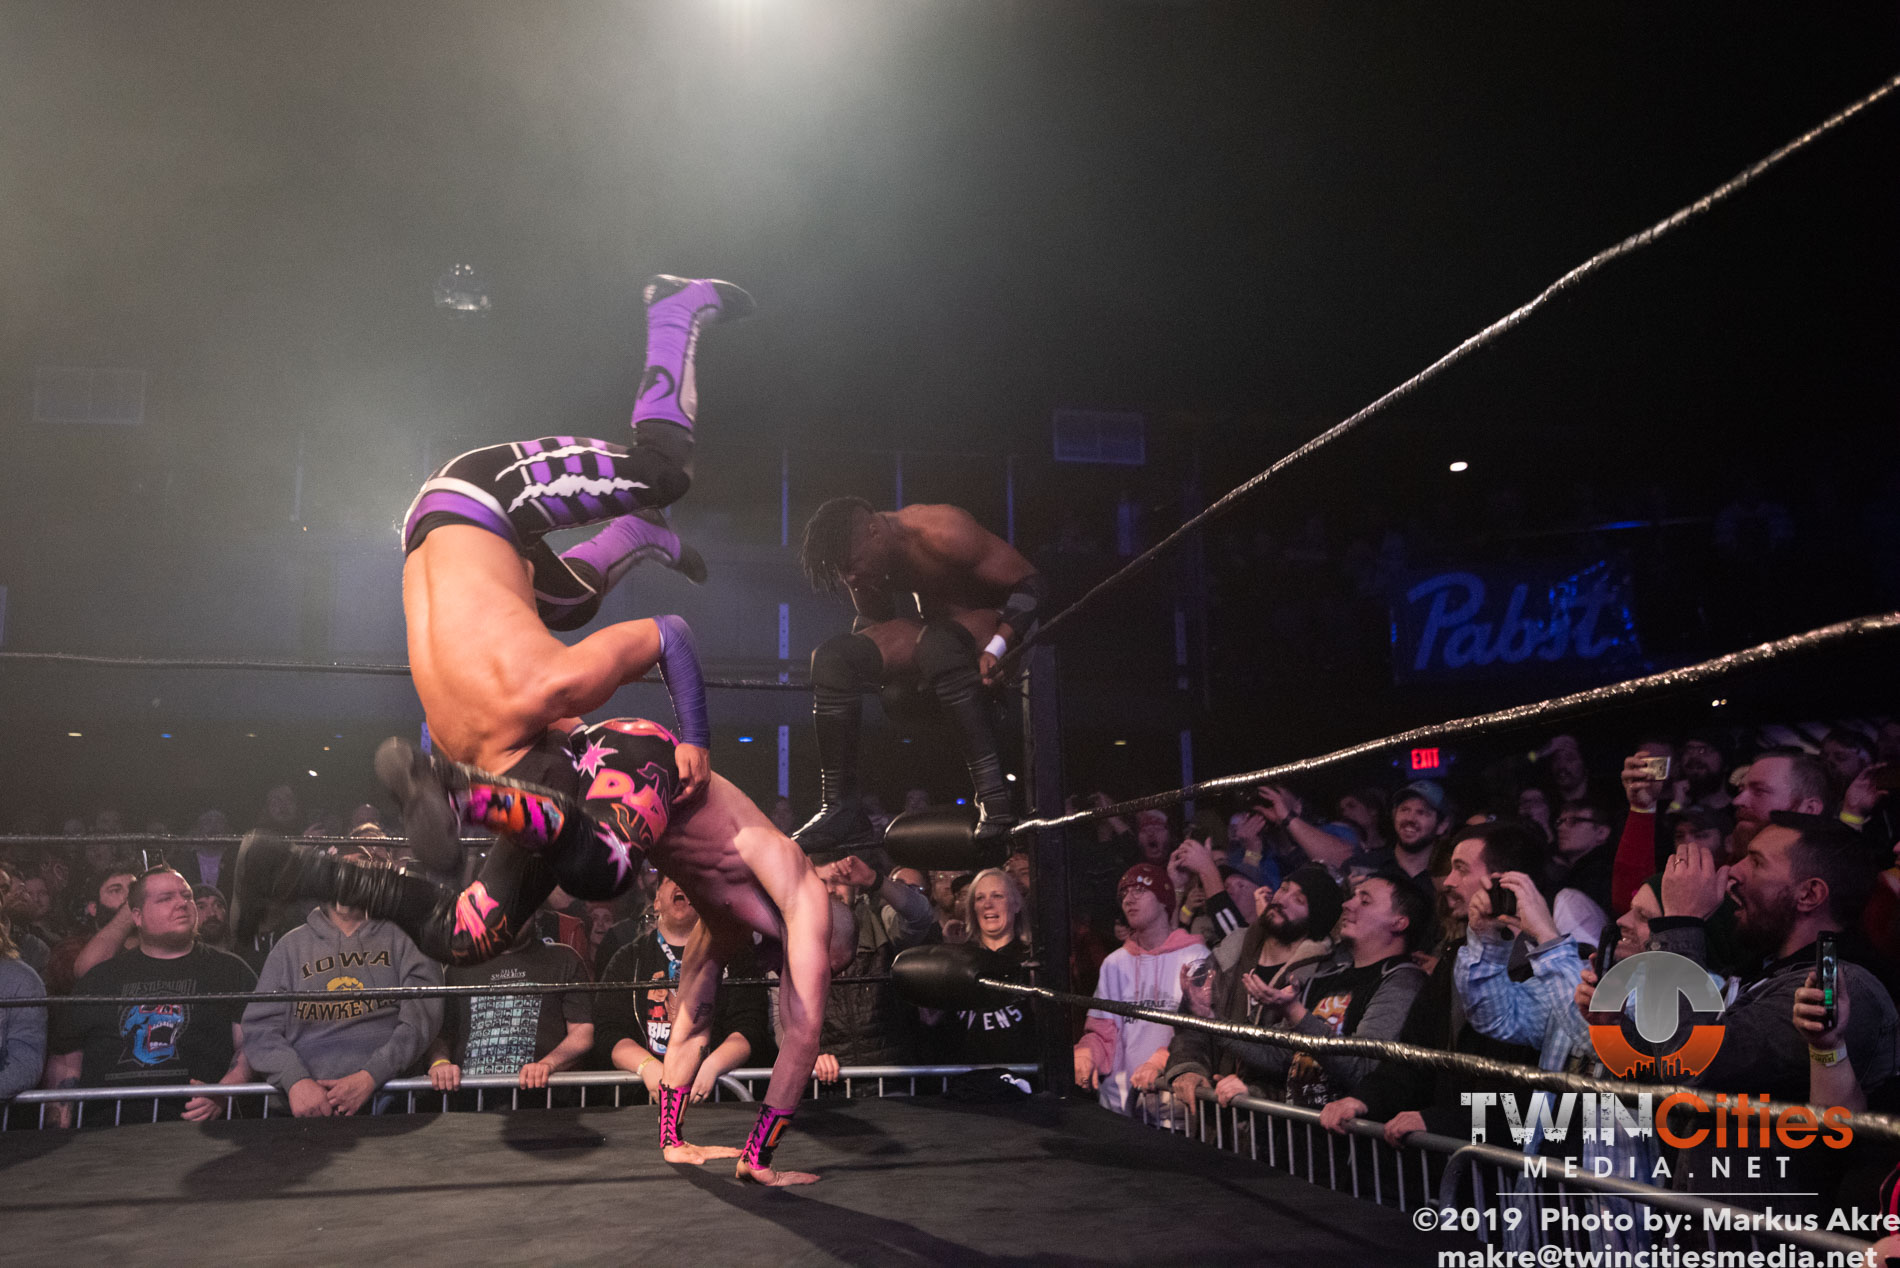 Wrestlepalooza - Match 6-13